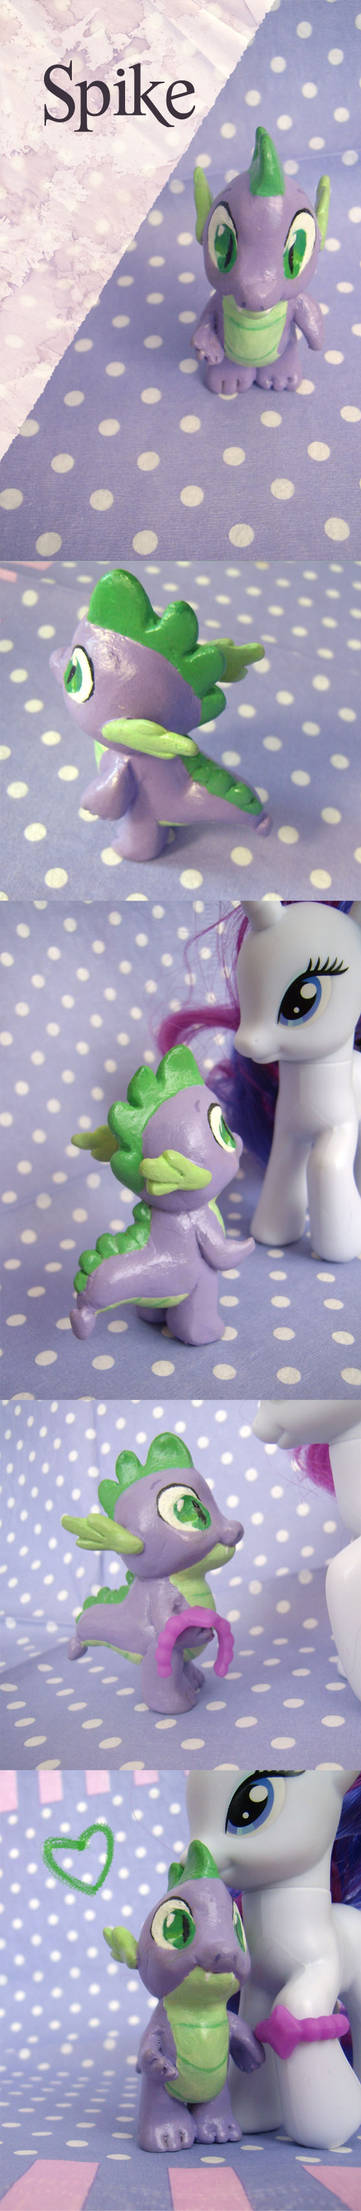 bi-pedal Spike from MLP:FIM -for sale-